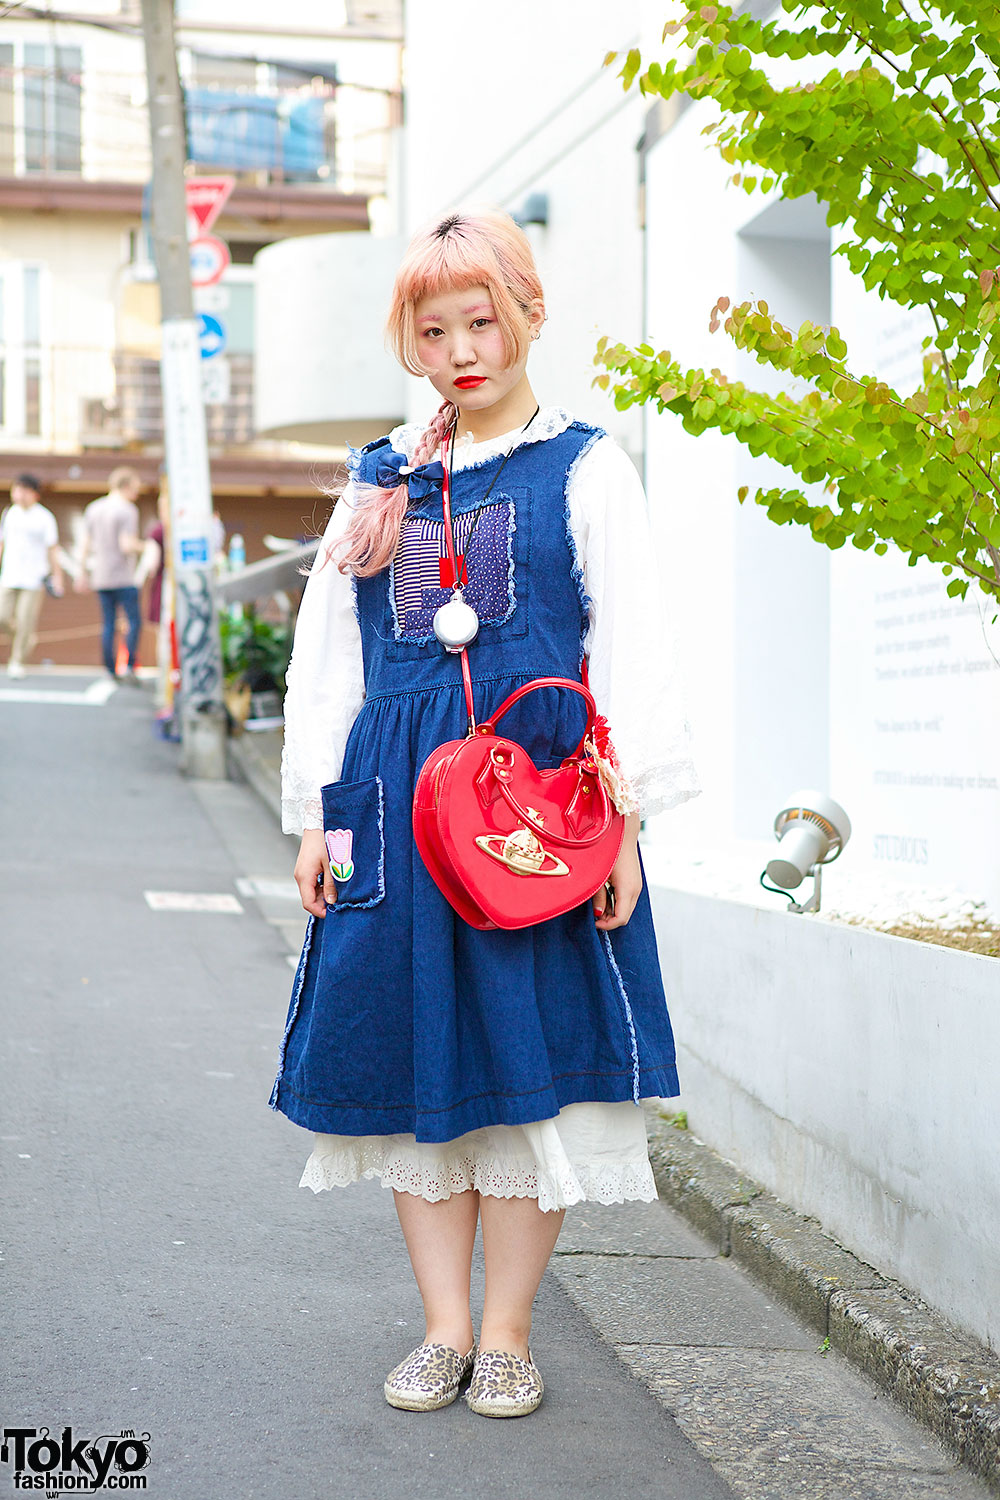 79ae23a3d8243 Pink Braided Hair w  Resale Layered Dresses   Vivienne Westwood Heart Bag  in Harajuku